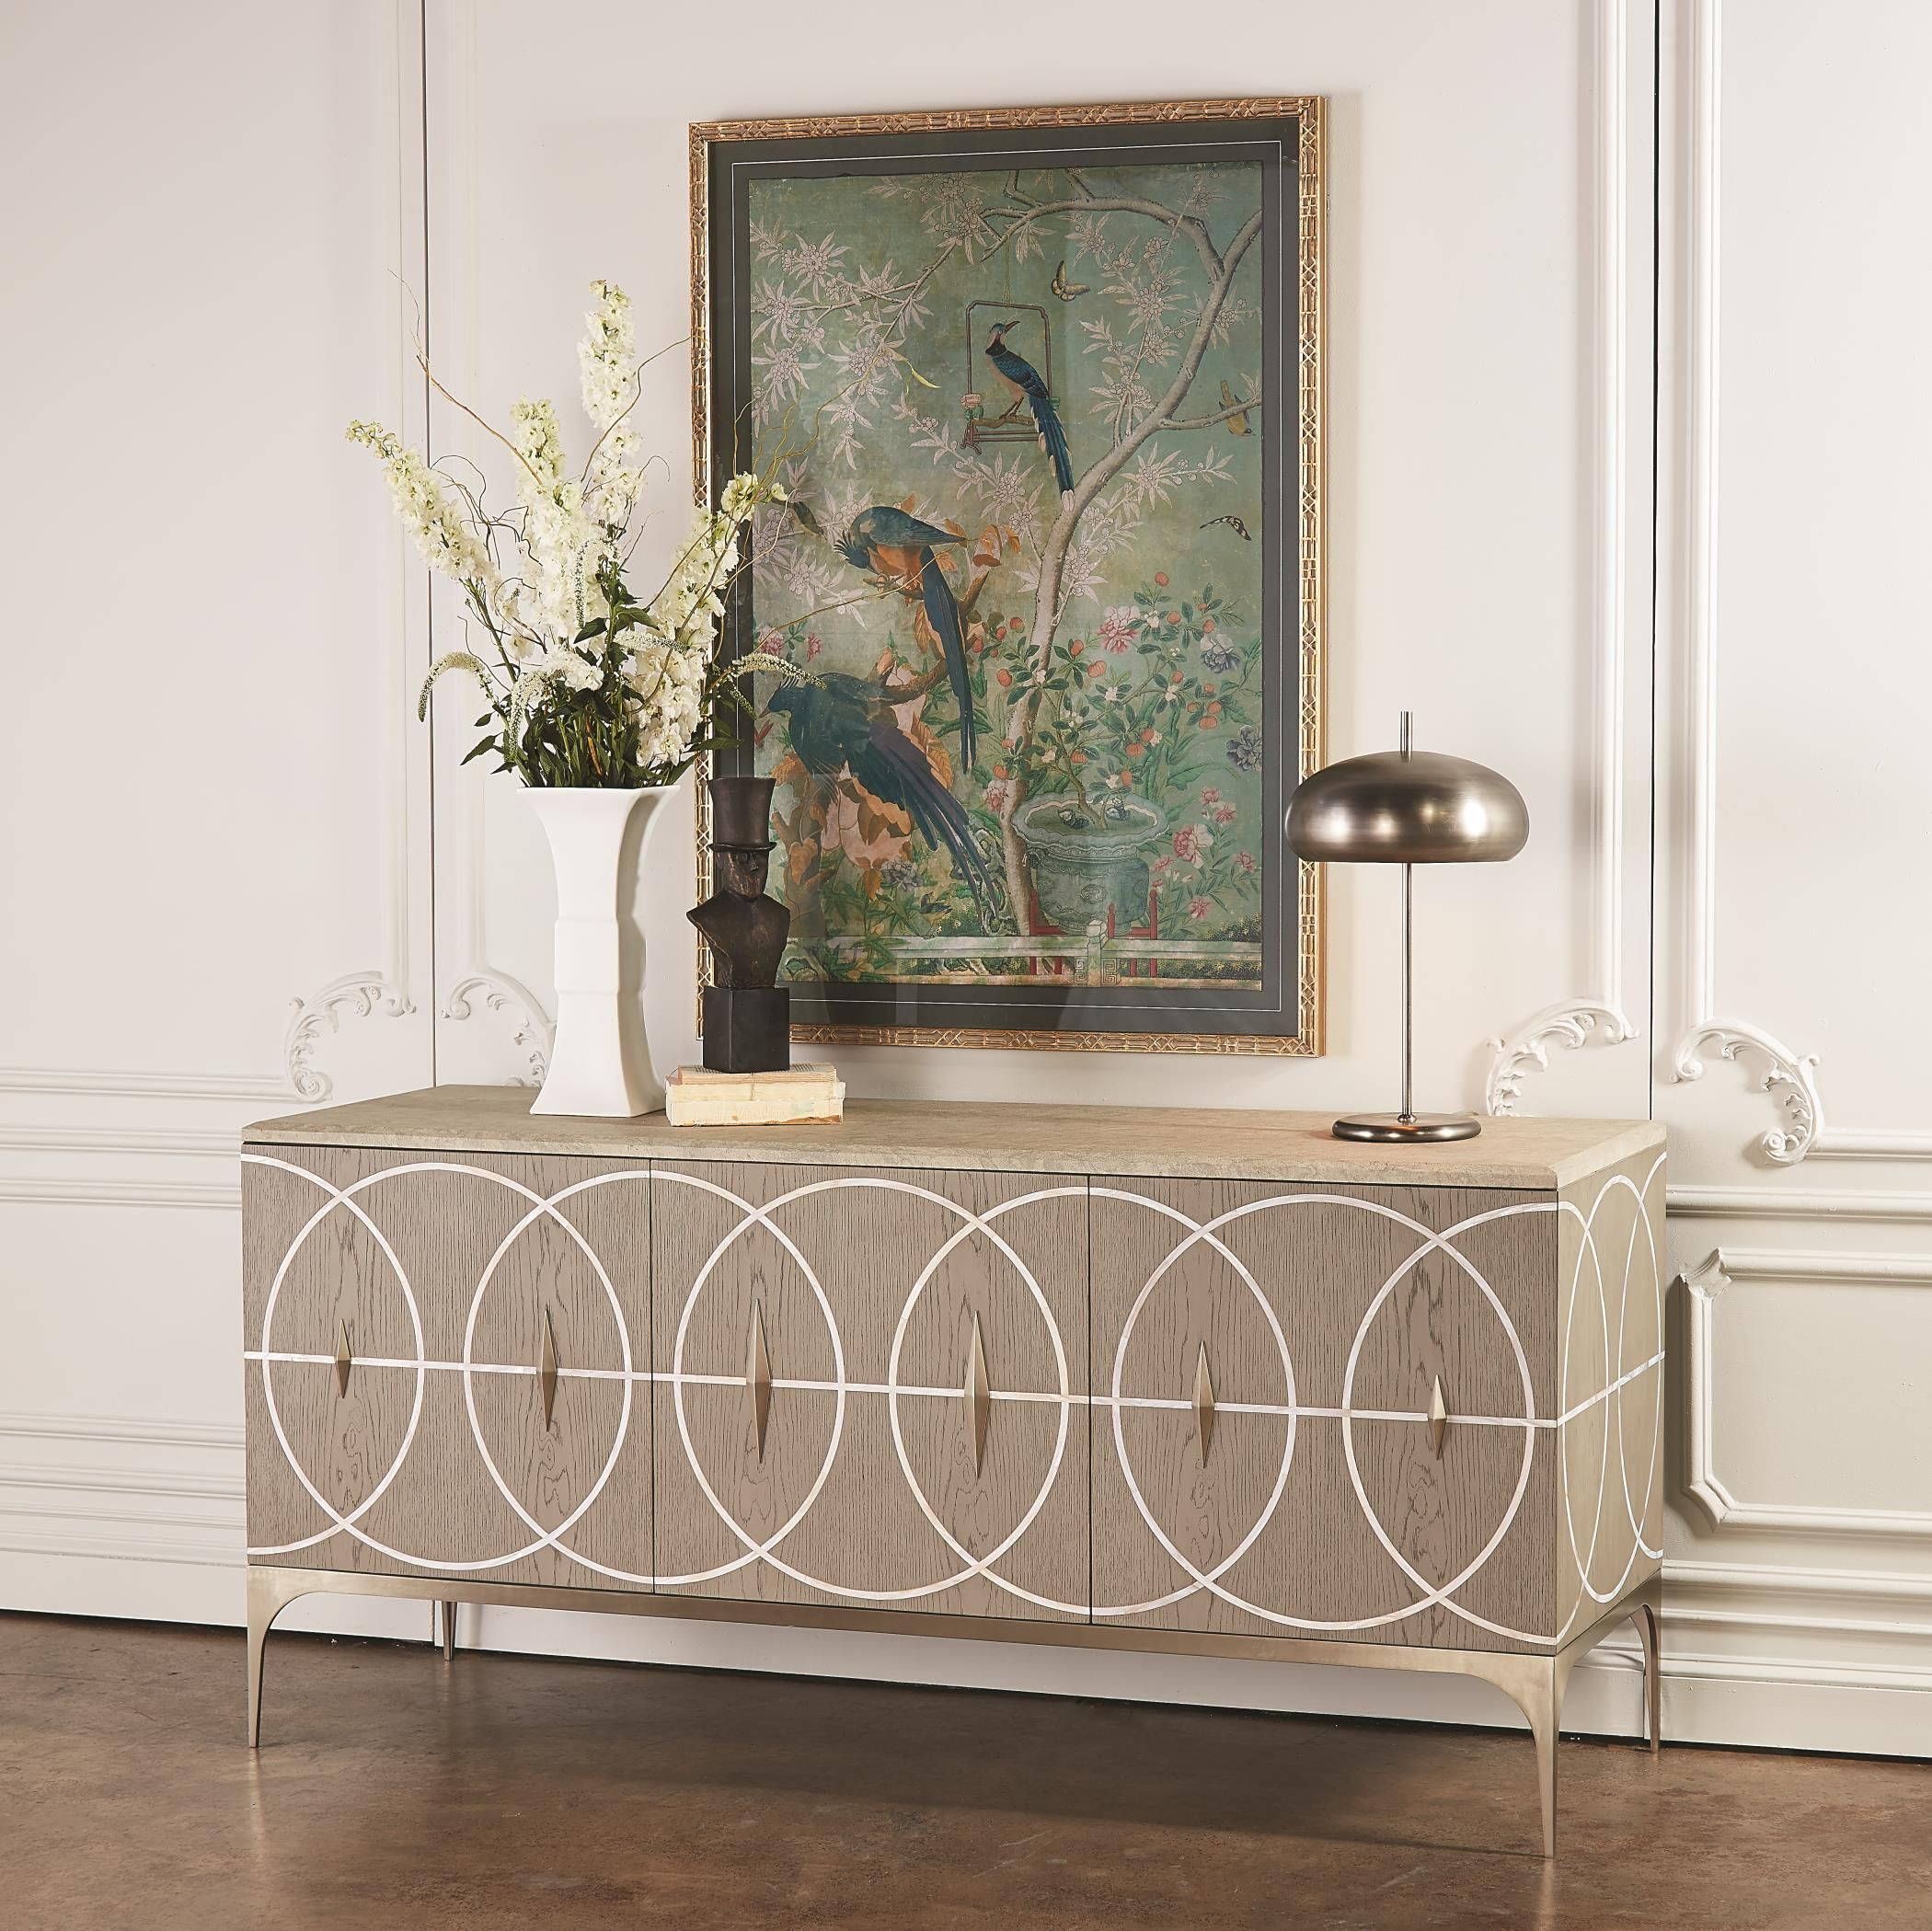 The Holborn Collection Is Inspired By A Design For An Iron Fence